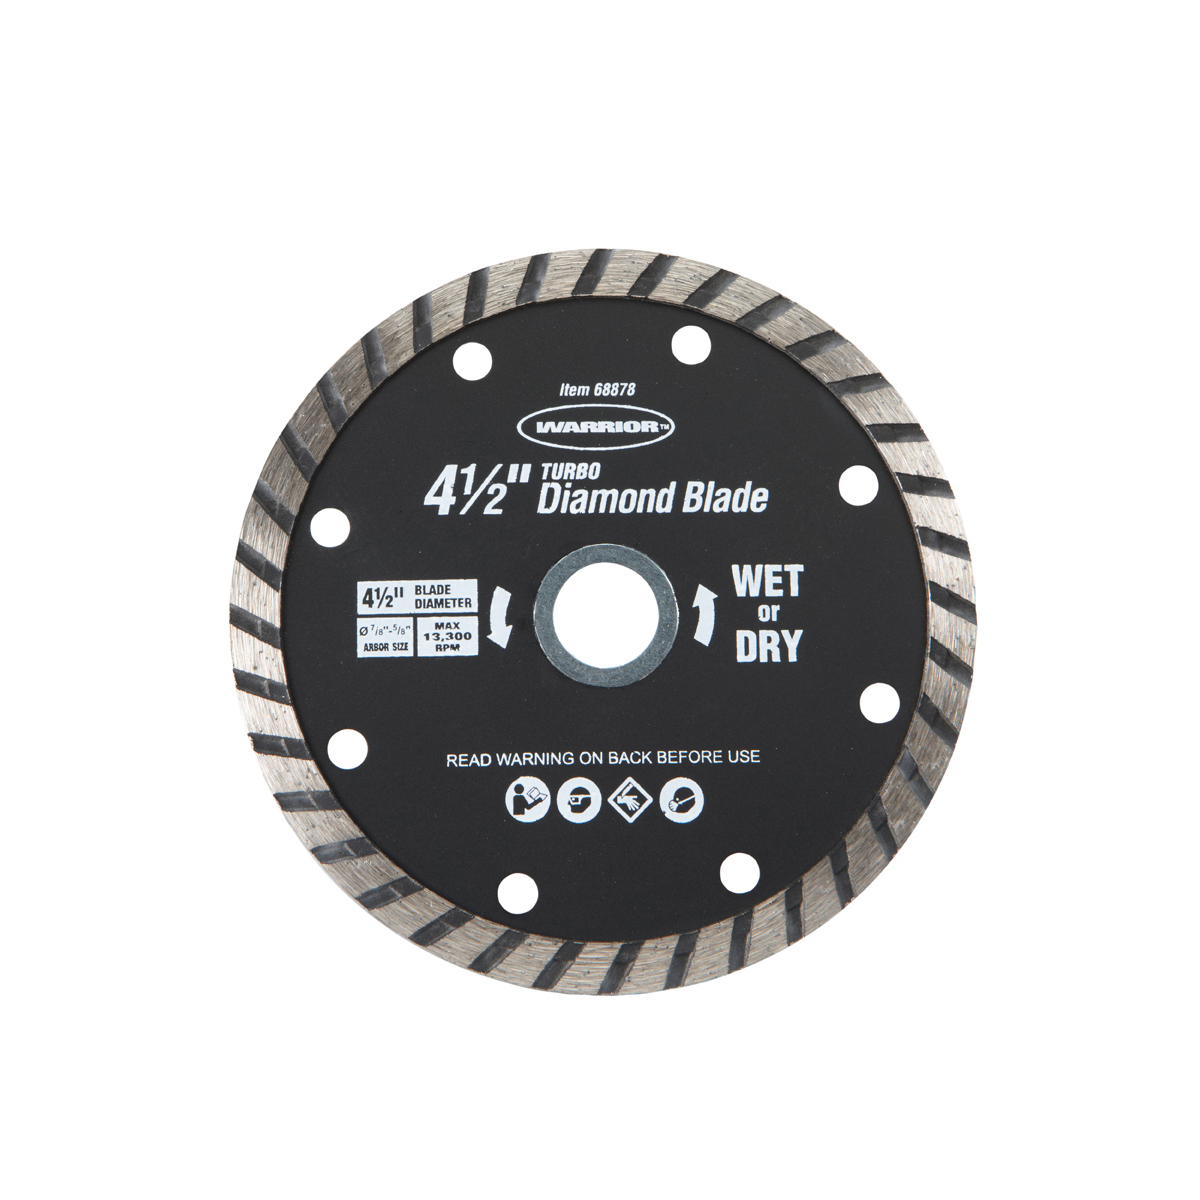 4 12 in turbo wet dry masonry diamond blade turbo wet dry masonry diamond blade keyboard keysfo Image collections